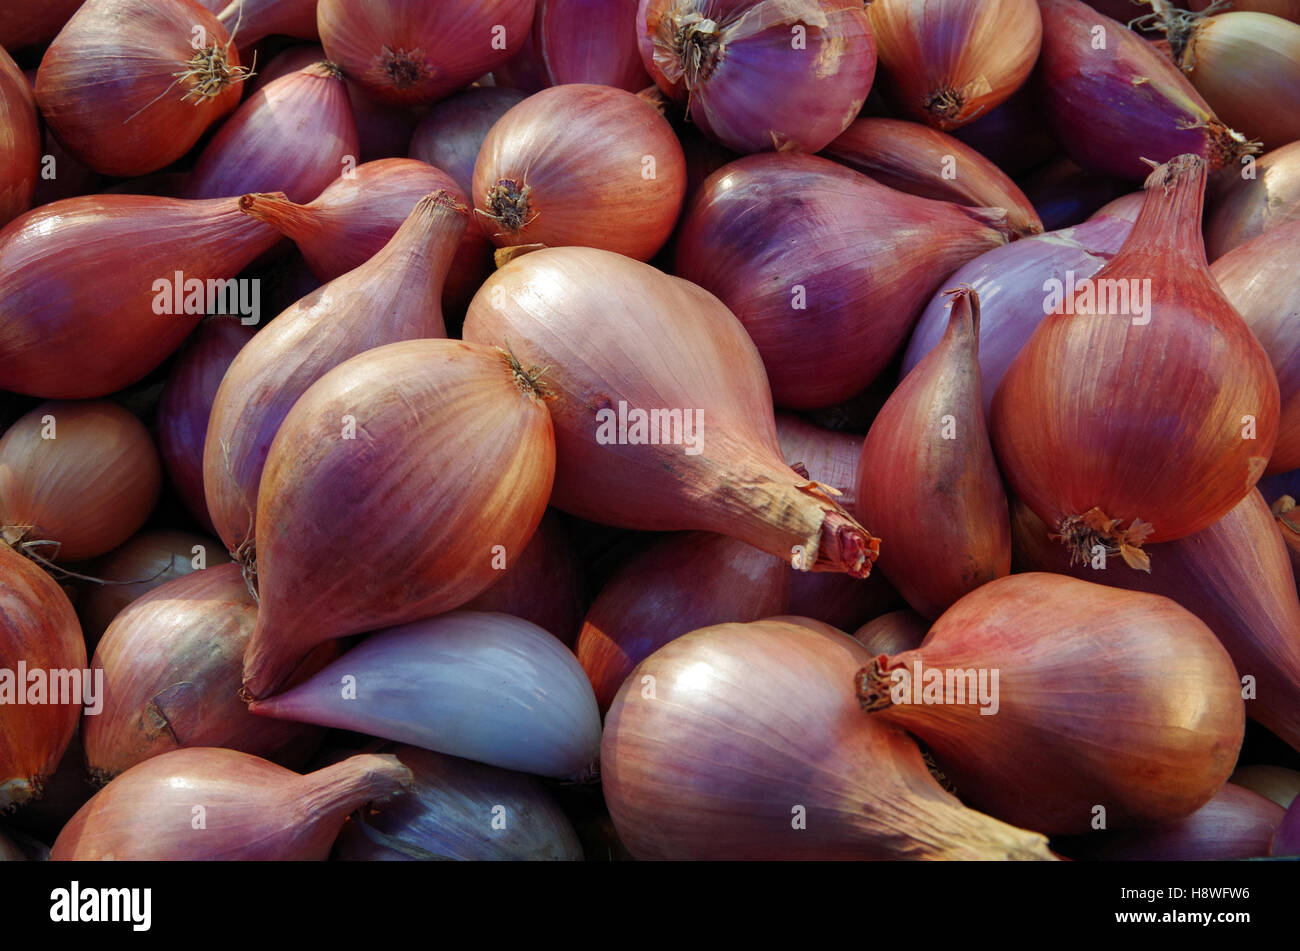 Shallots piled for market - Stock Image